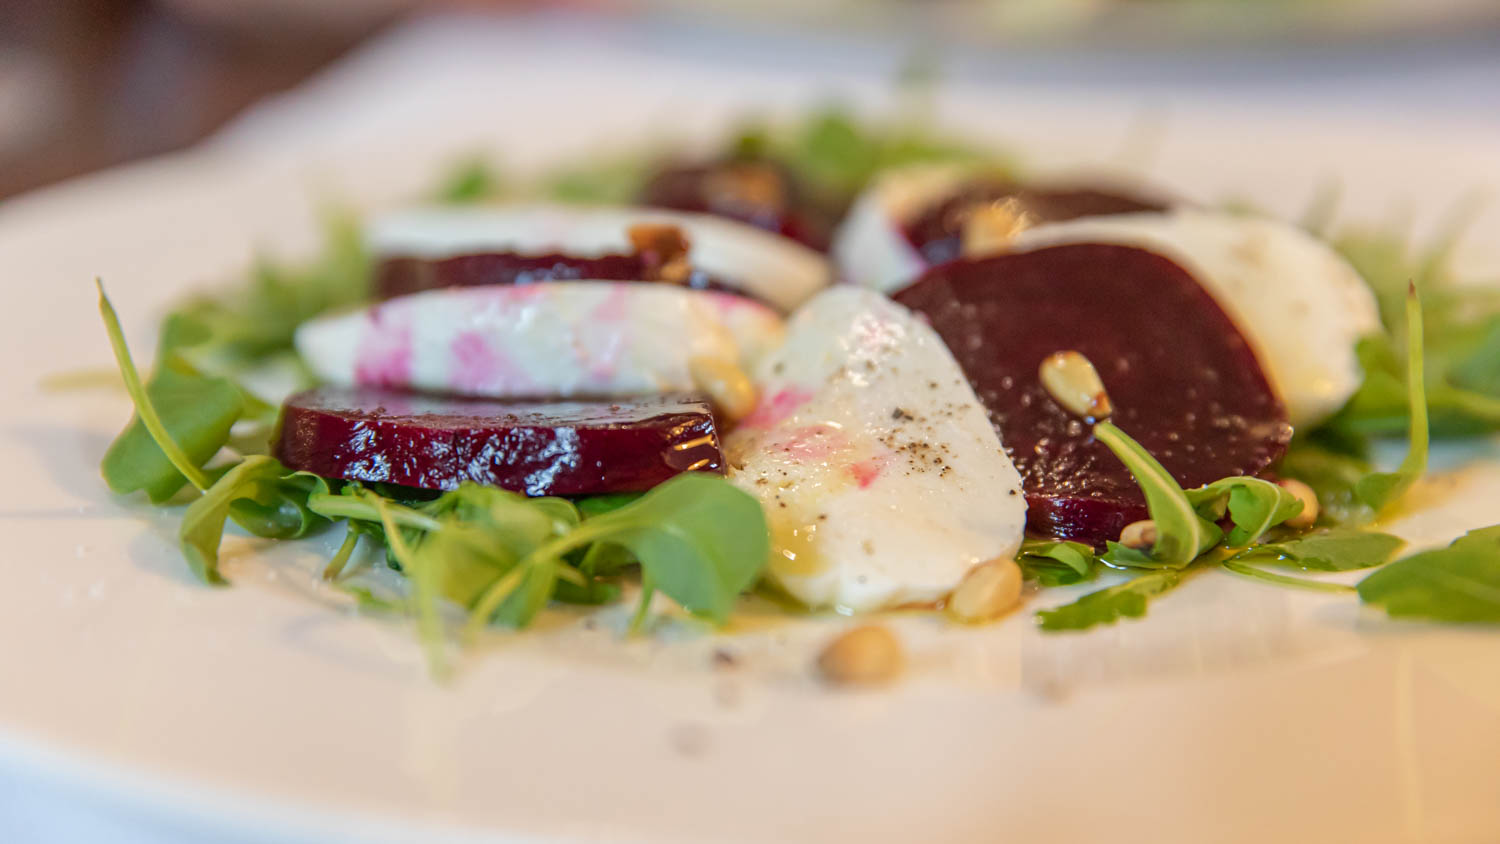 Beetroot salad with cheese and pine nuts